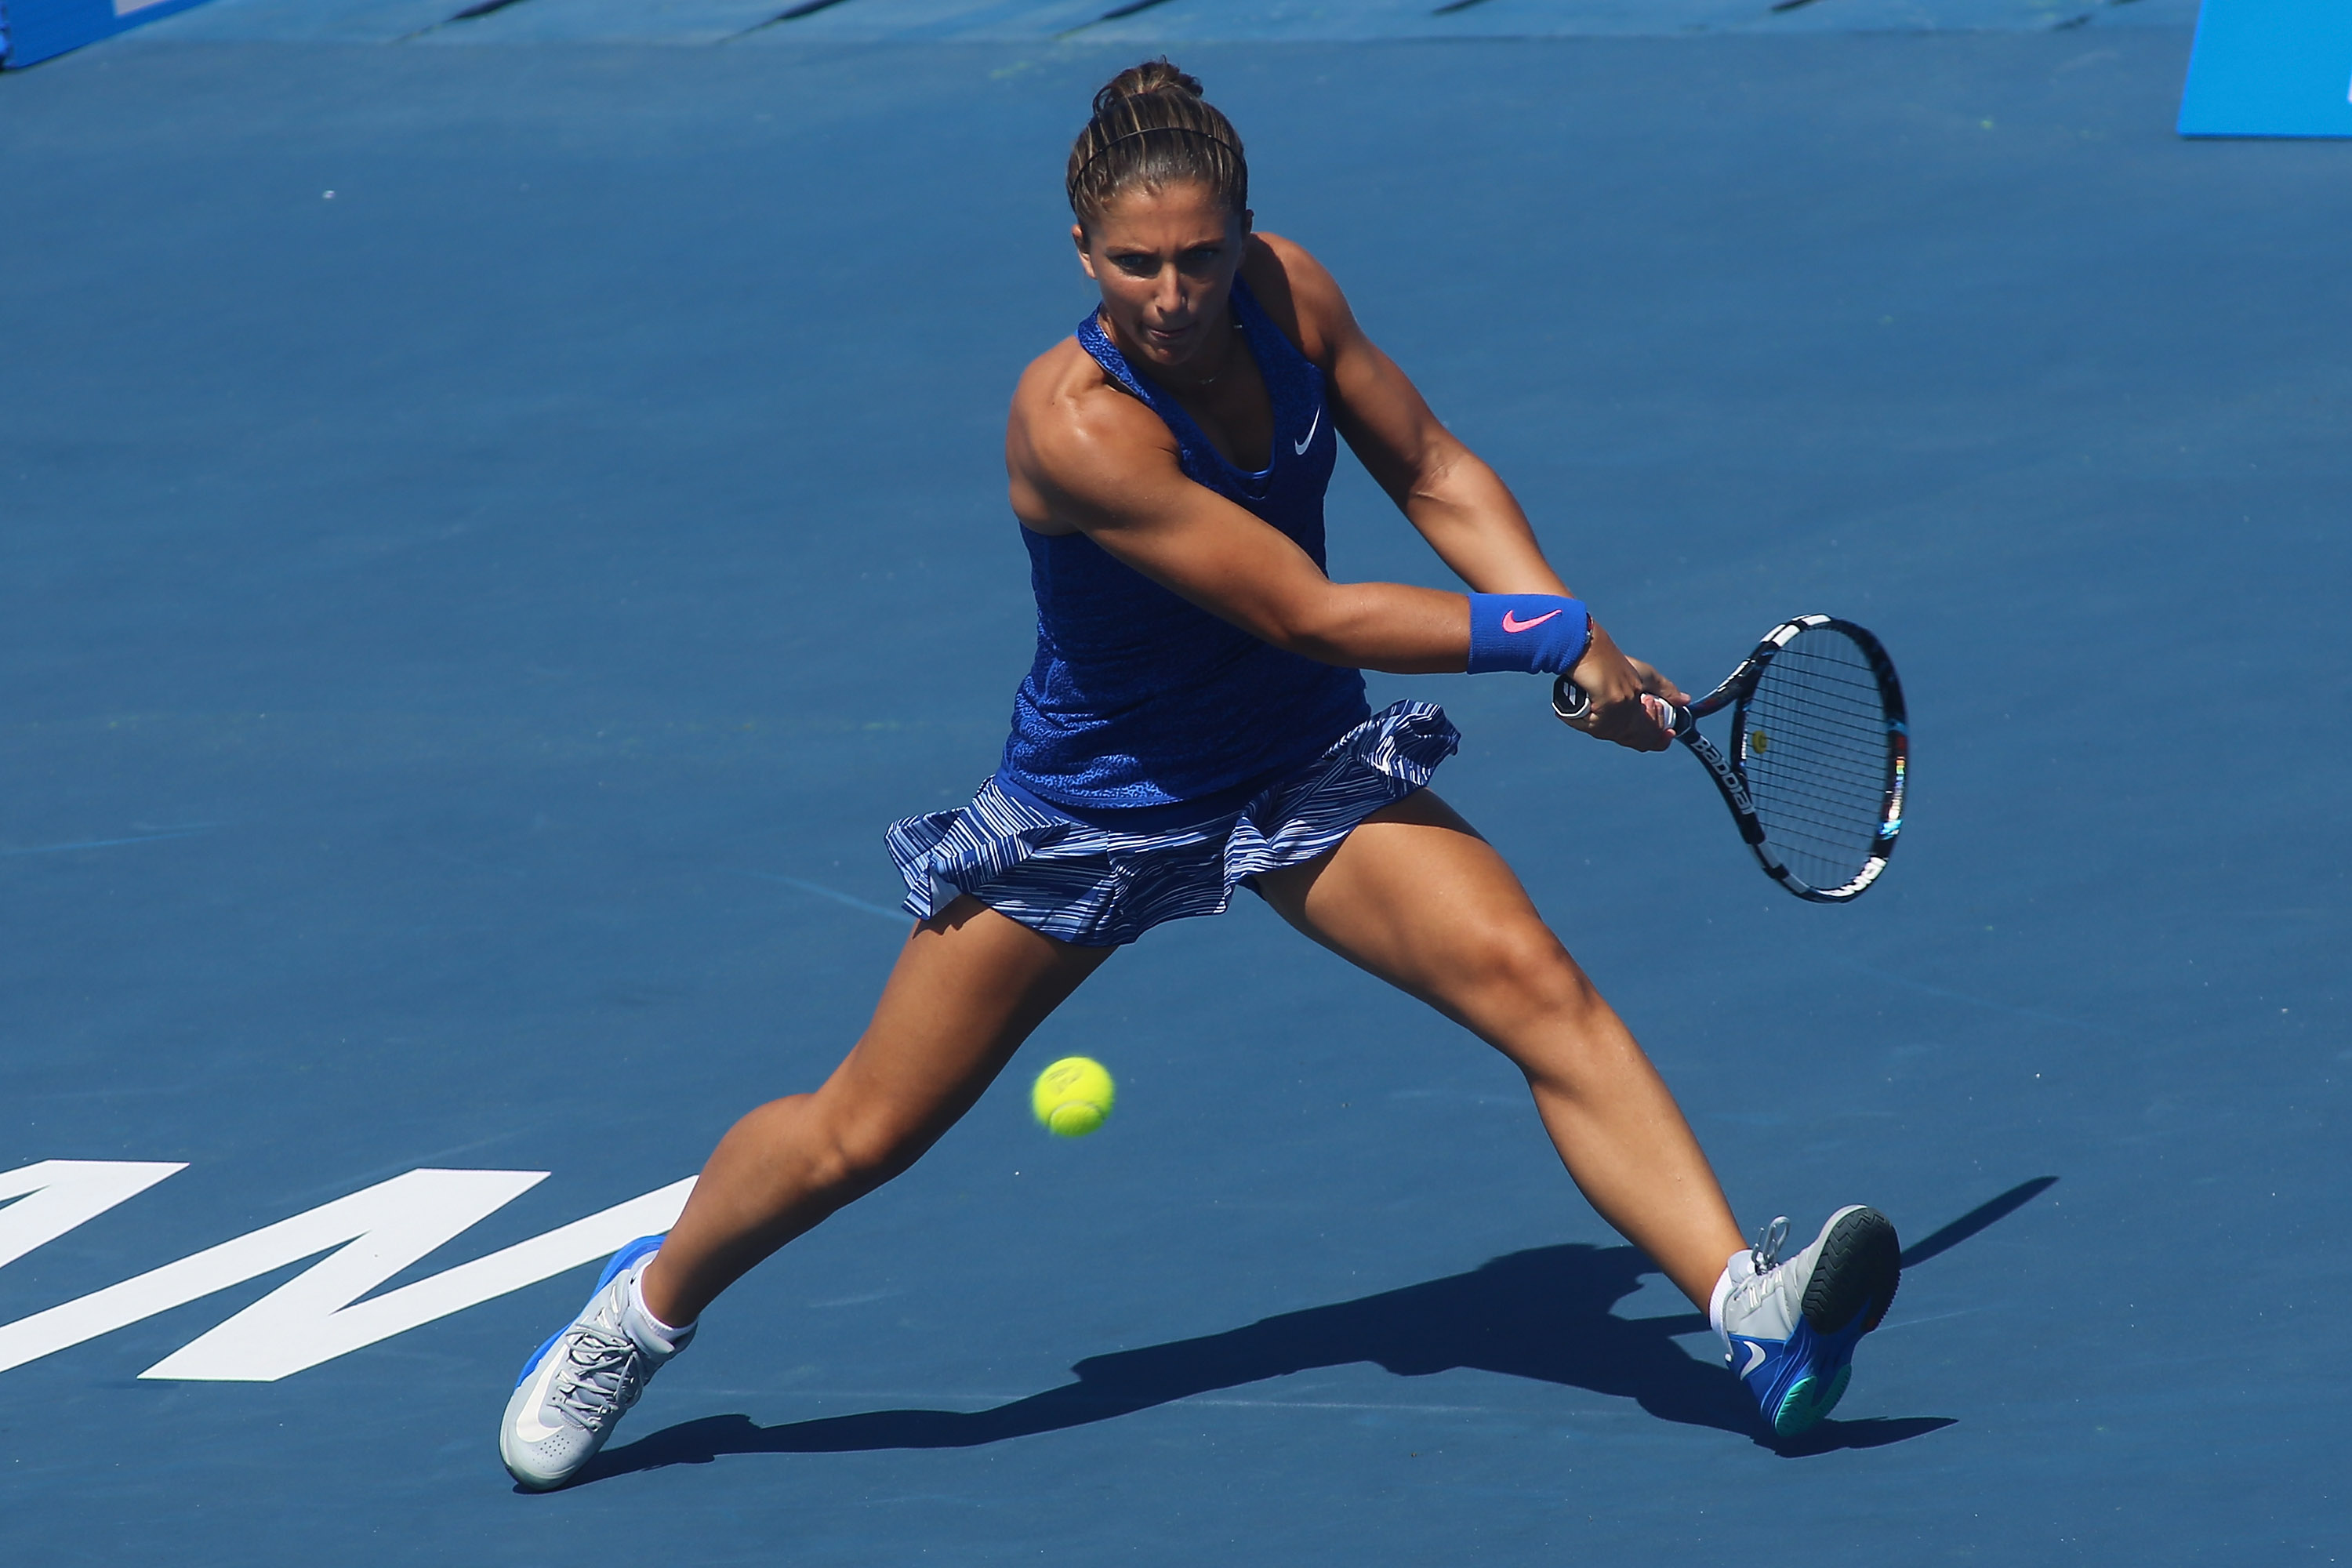 Sara Errani returns a shot during her match against Heather Watson.